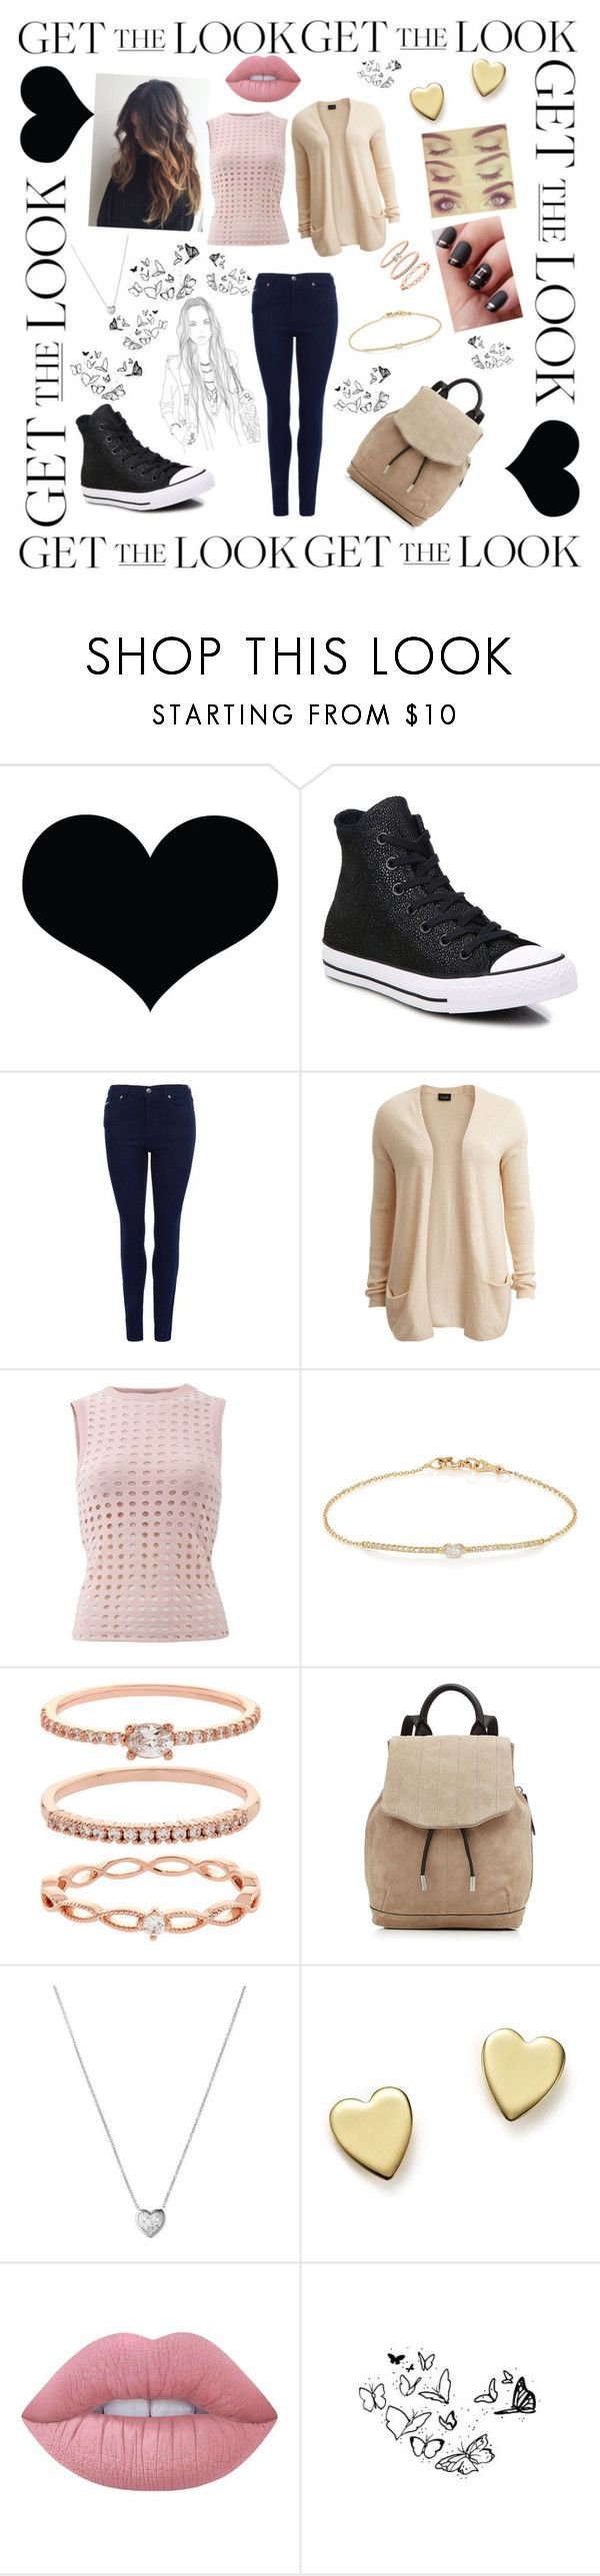 """Get the look: Winter Style"" by eliskiku ❤ liked on Polyvore featuring Brika, Converse, Barbour International, Vila Milano, T By Alexander Wang, Tate, Accessorize, rag & bone, Links of London and Bloomingdale's"